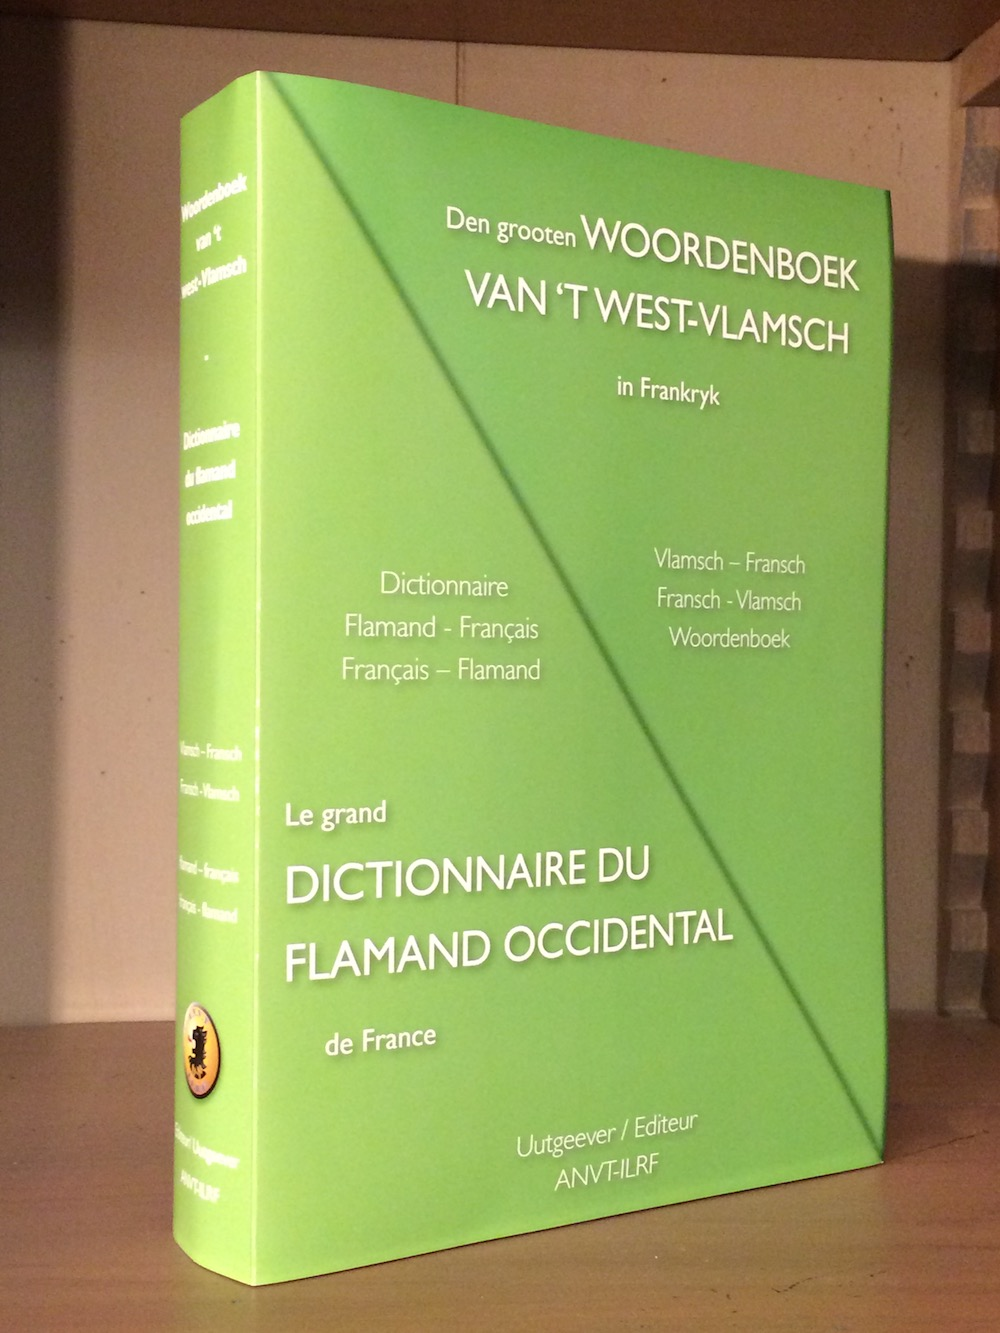 Dictionnaire du flamand occidental - Woordenboek van 't West-Vlamsch